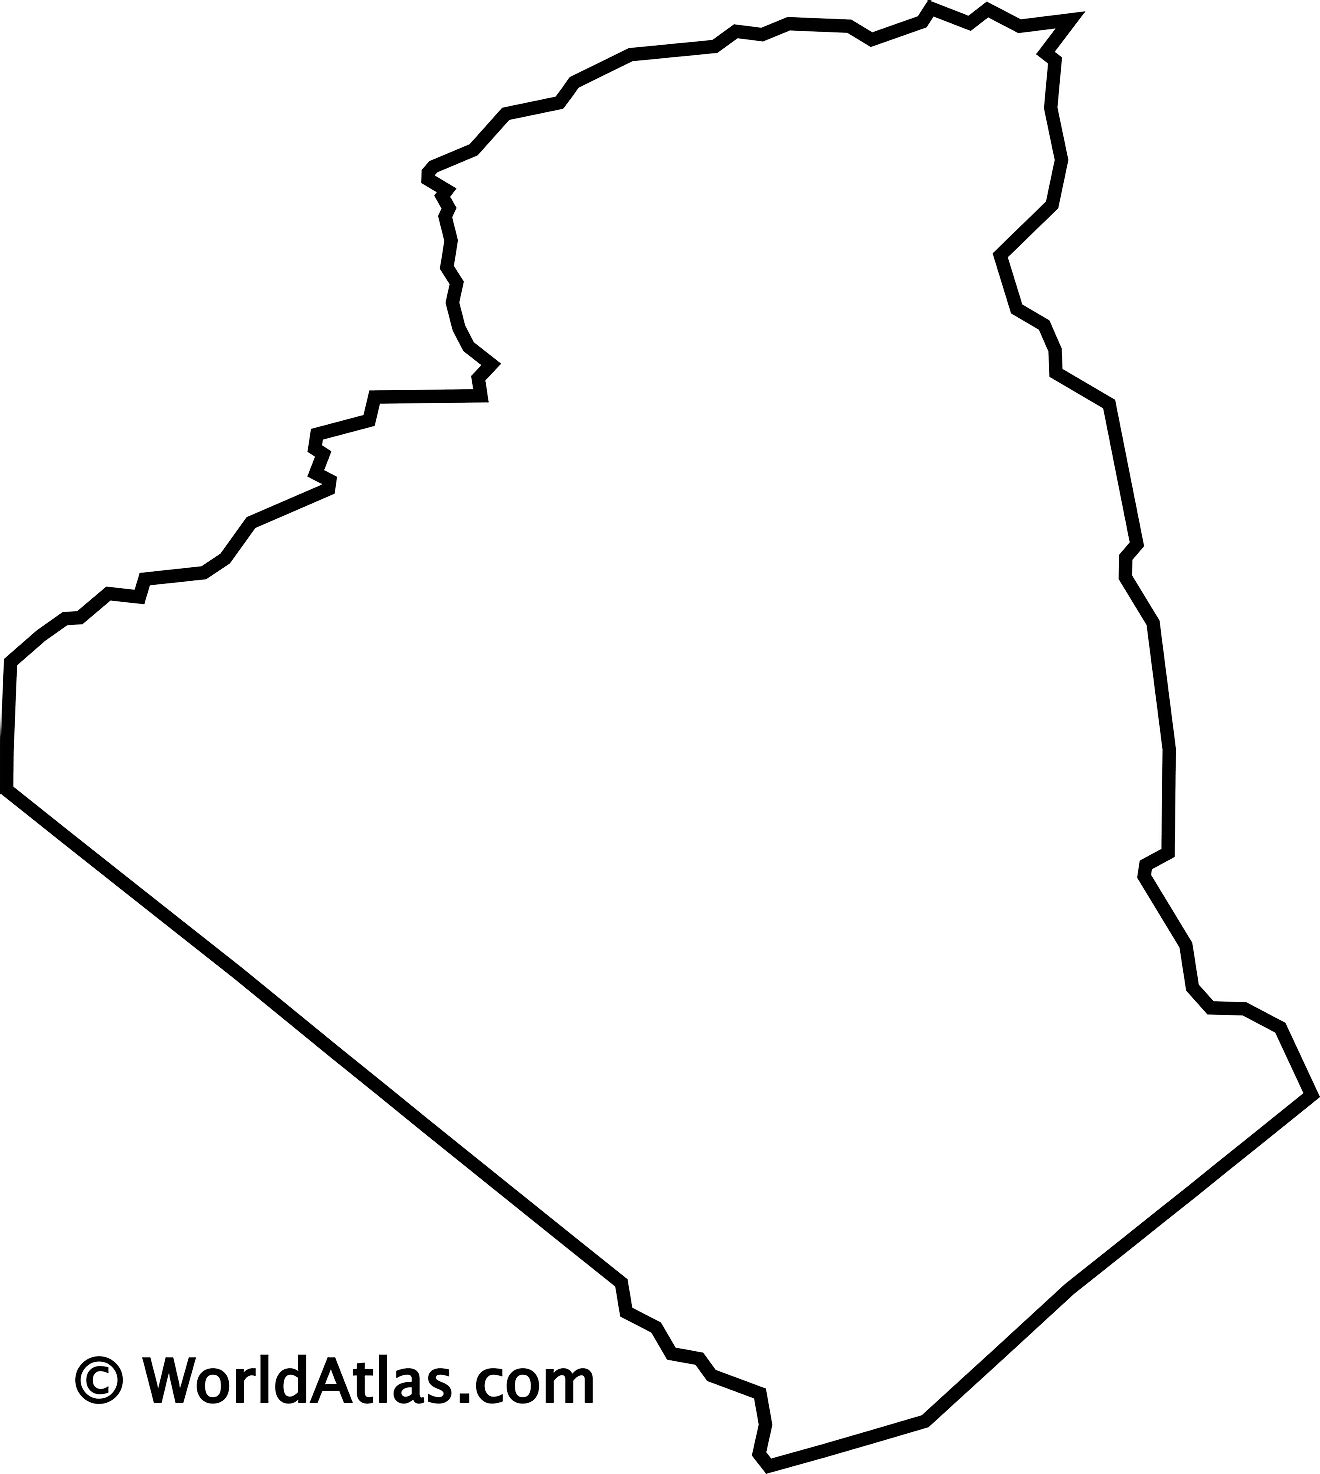 Blank Outline map of Algeria.